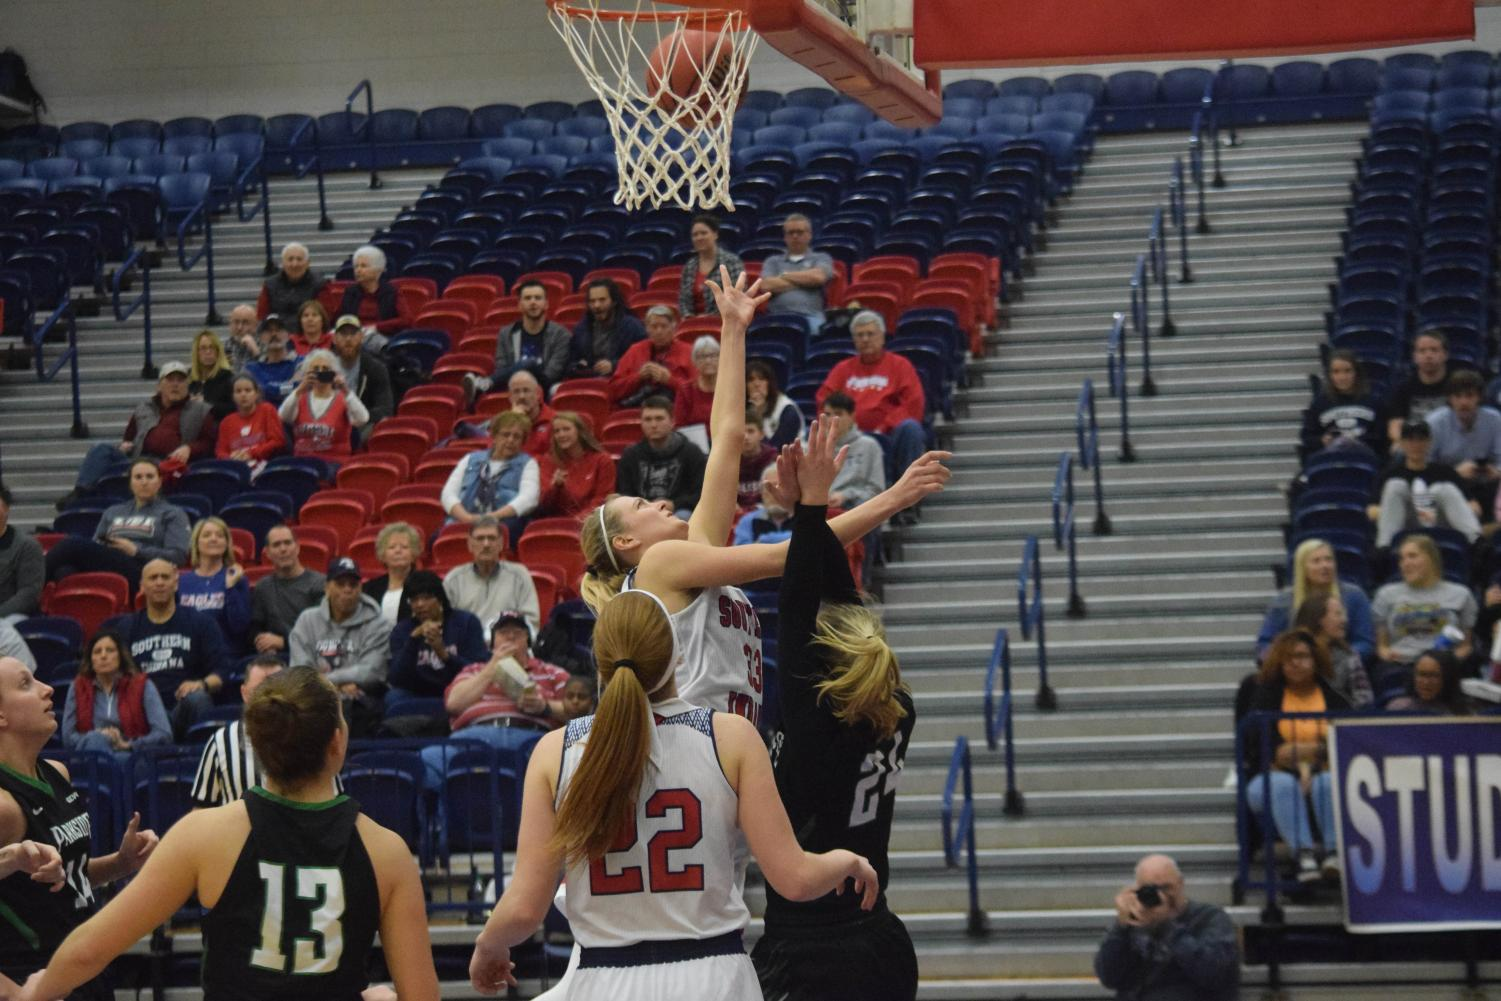 Kaydie+Grooms%2C+senior+guard%2C+goes+up+strong+for+a+layup.